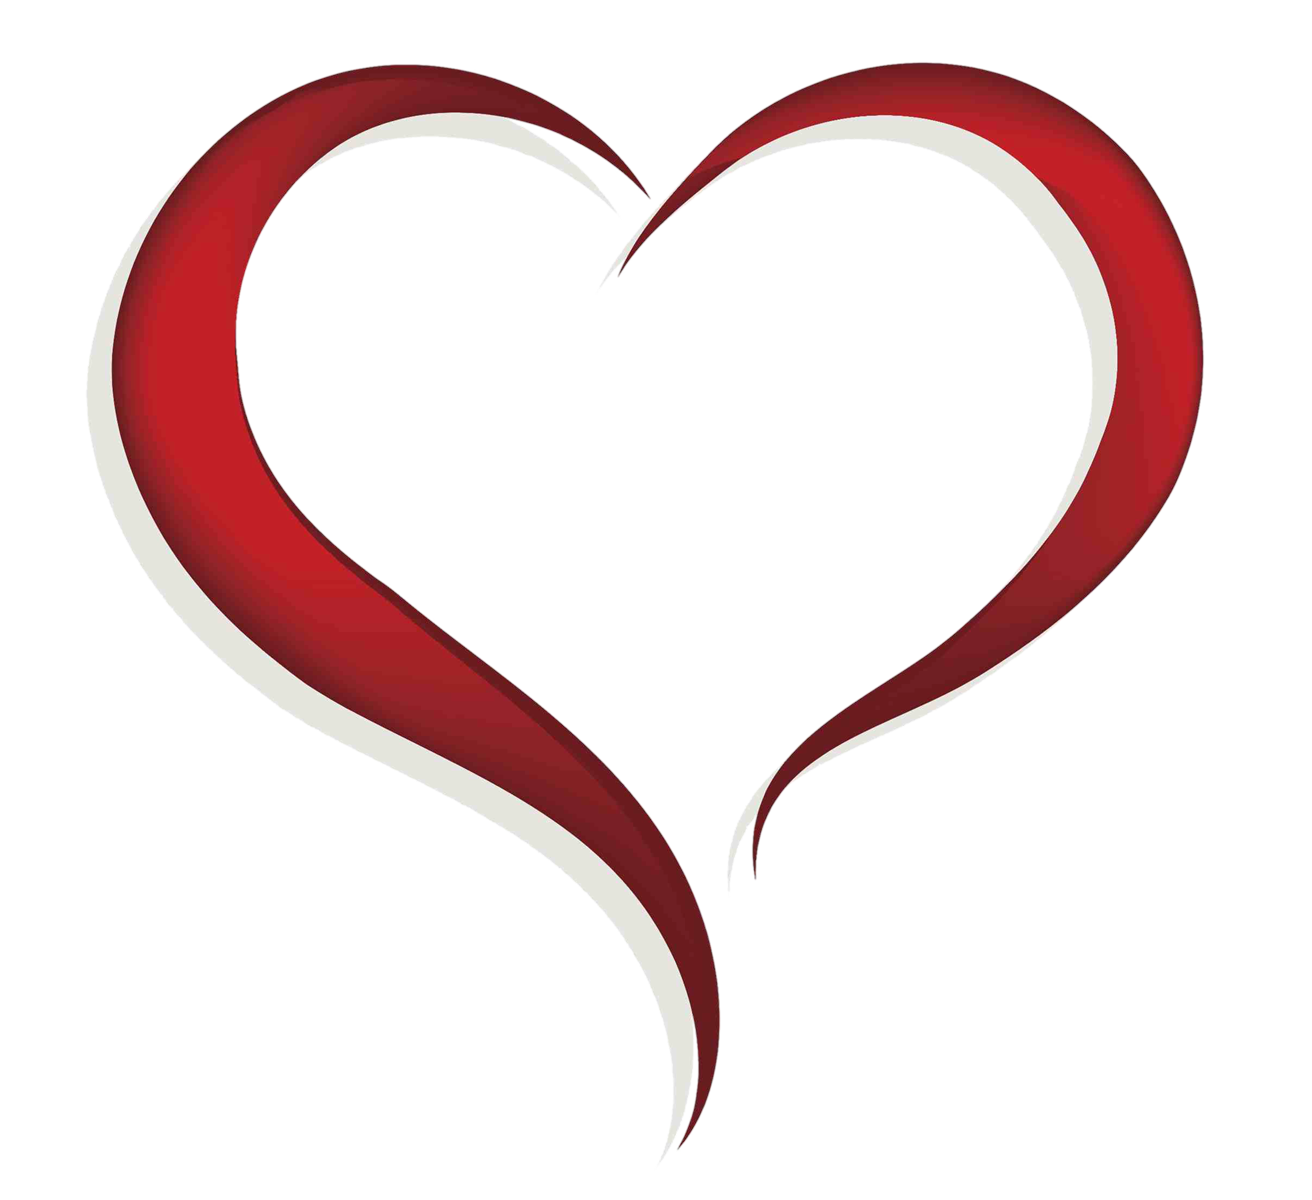 Home    Objects    Heart    Heart Clipart Png Image Transparent